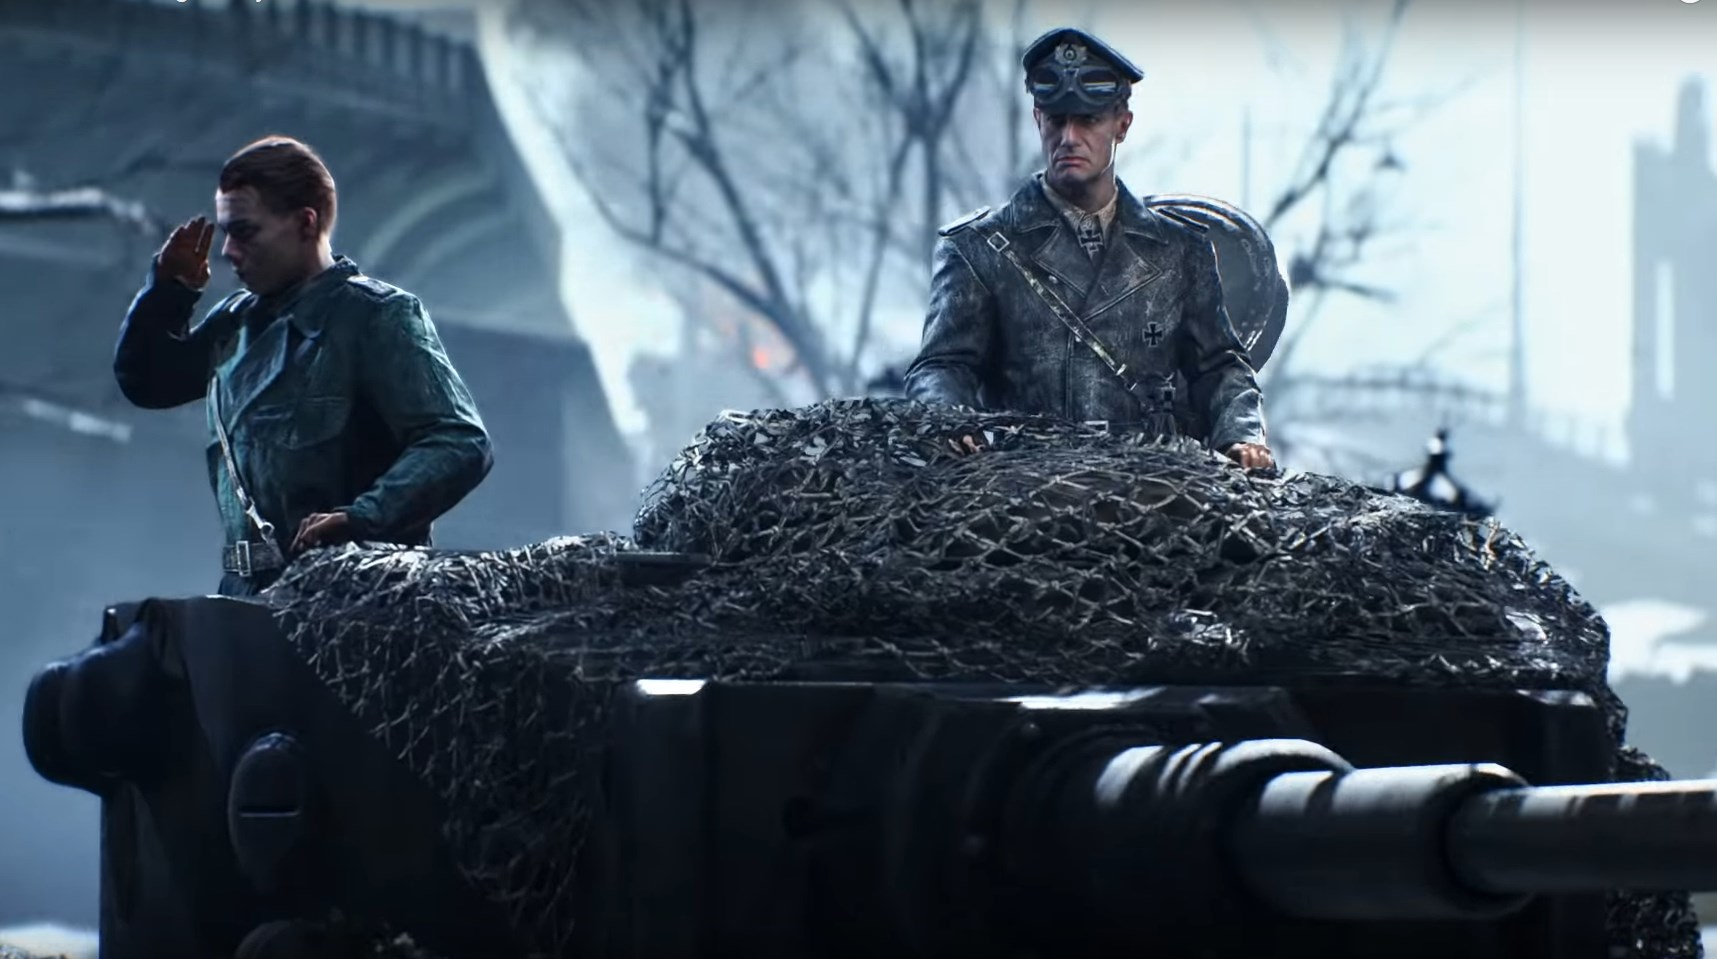 Battlefield 5's German campaign mission is 'not a hero story